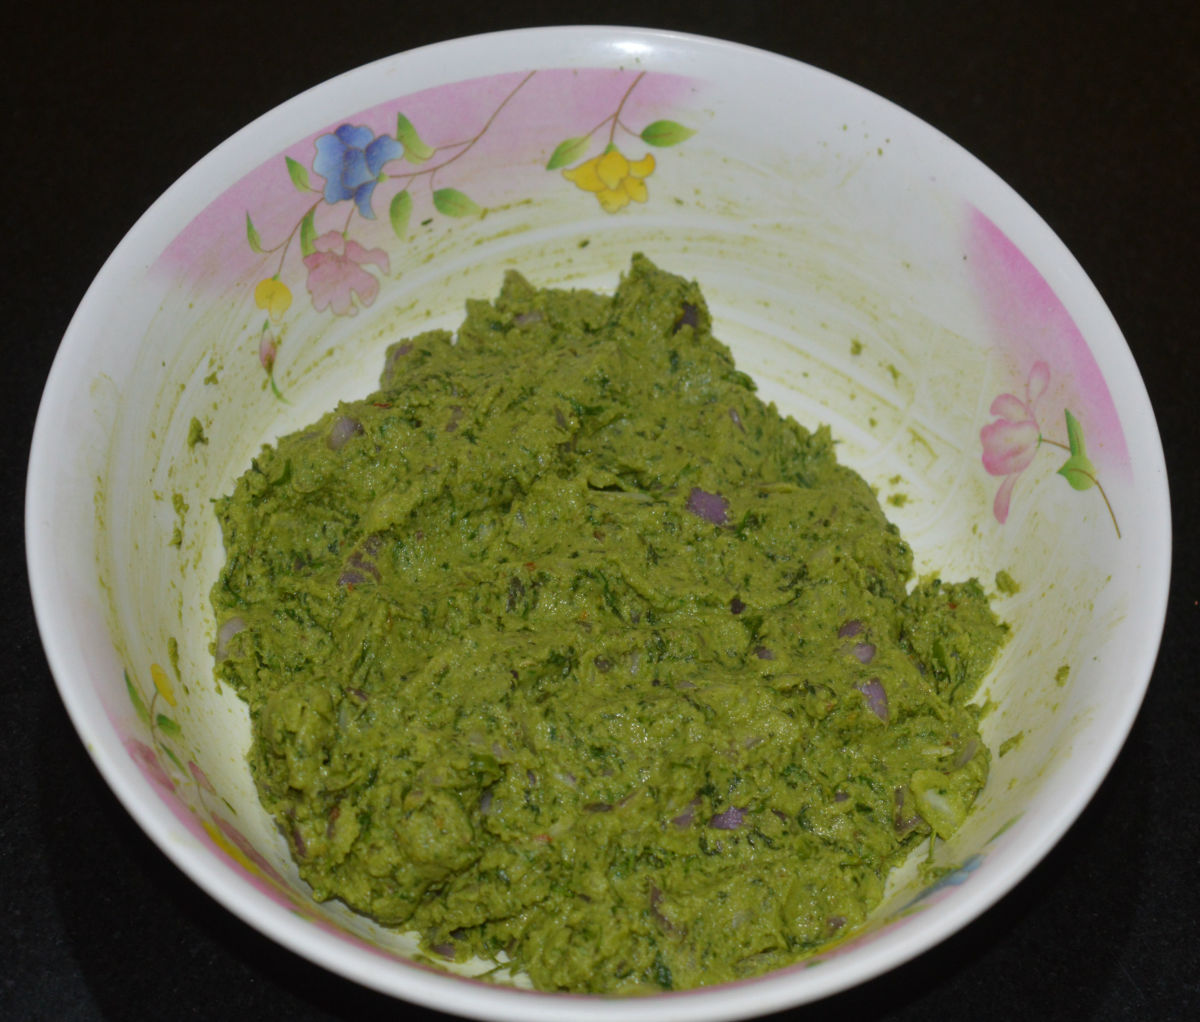 Make the dough spreadable by adding a teaspoon water and mixing well.